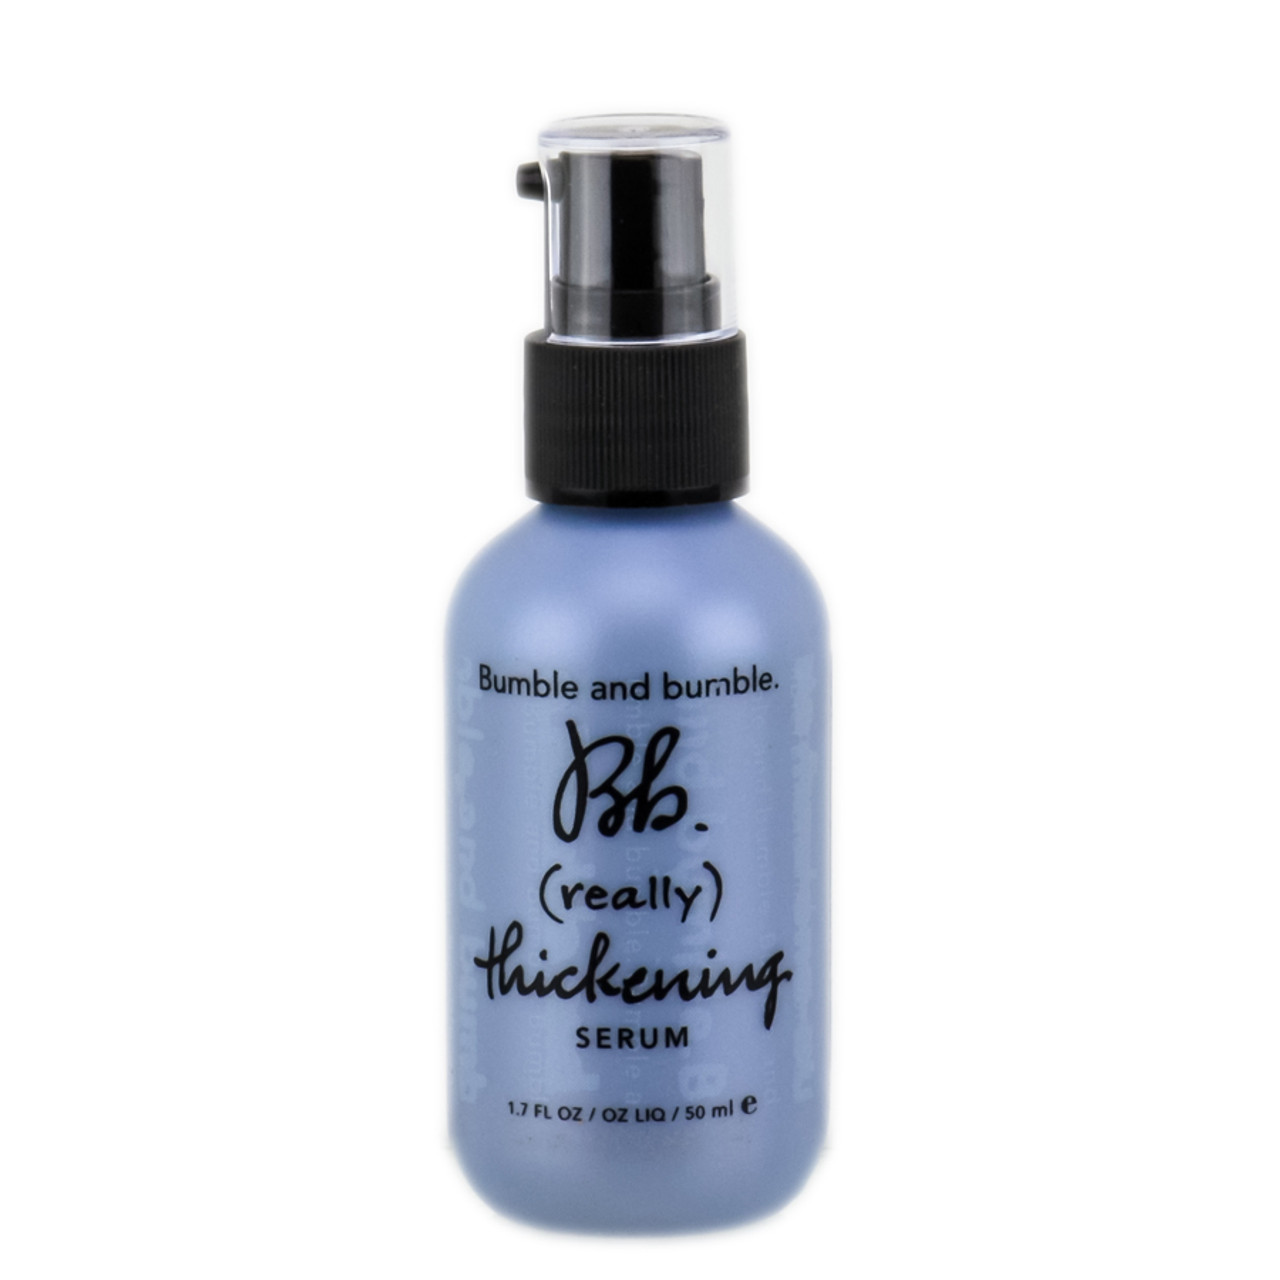 bumble and bumble thickening serum reviews